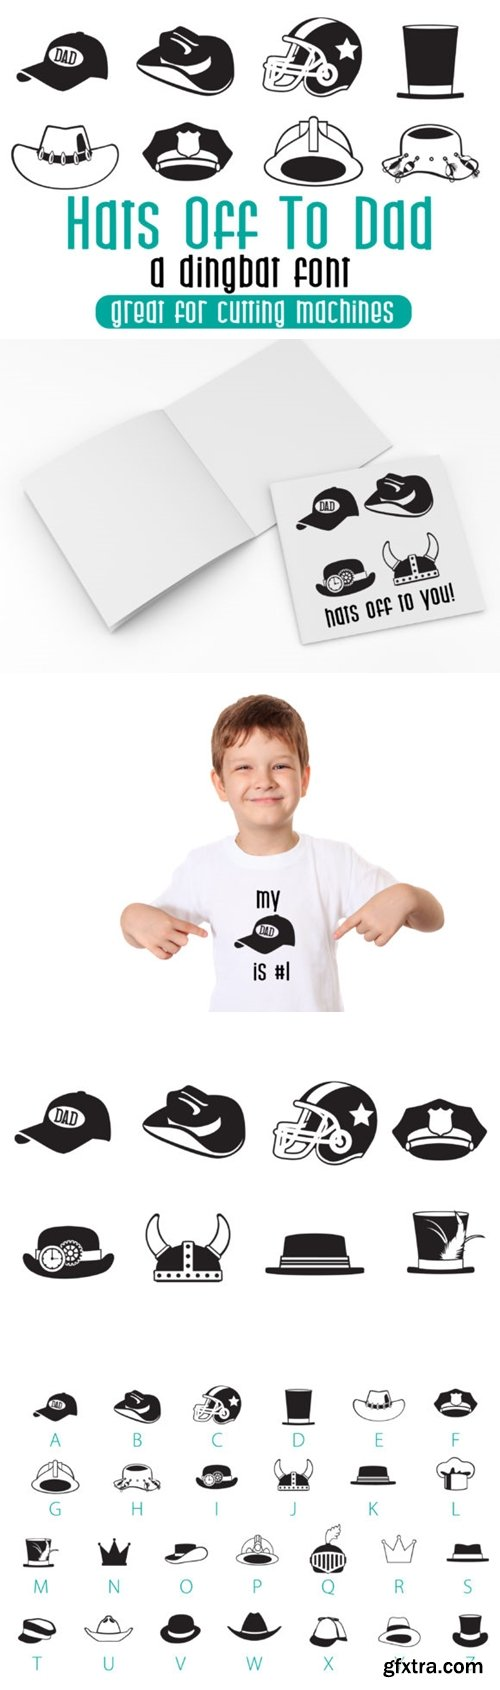 Hats off to Dad Font